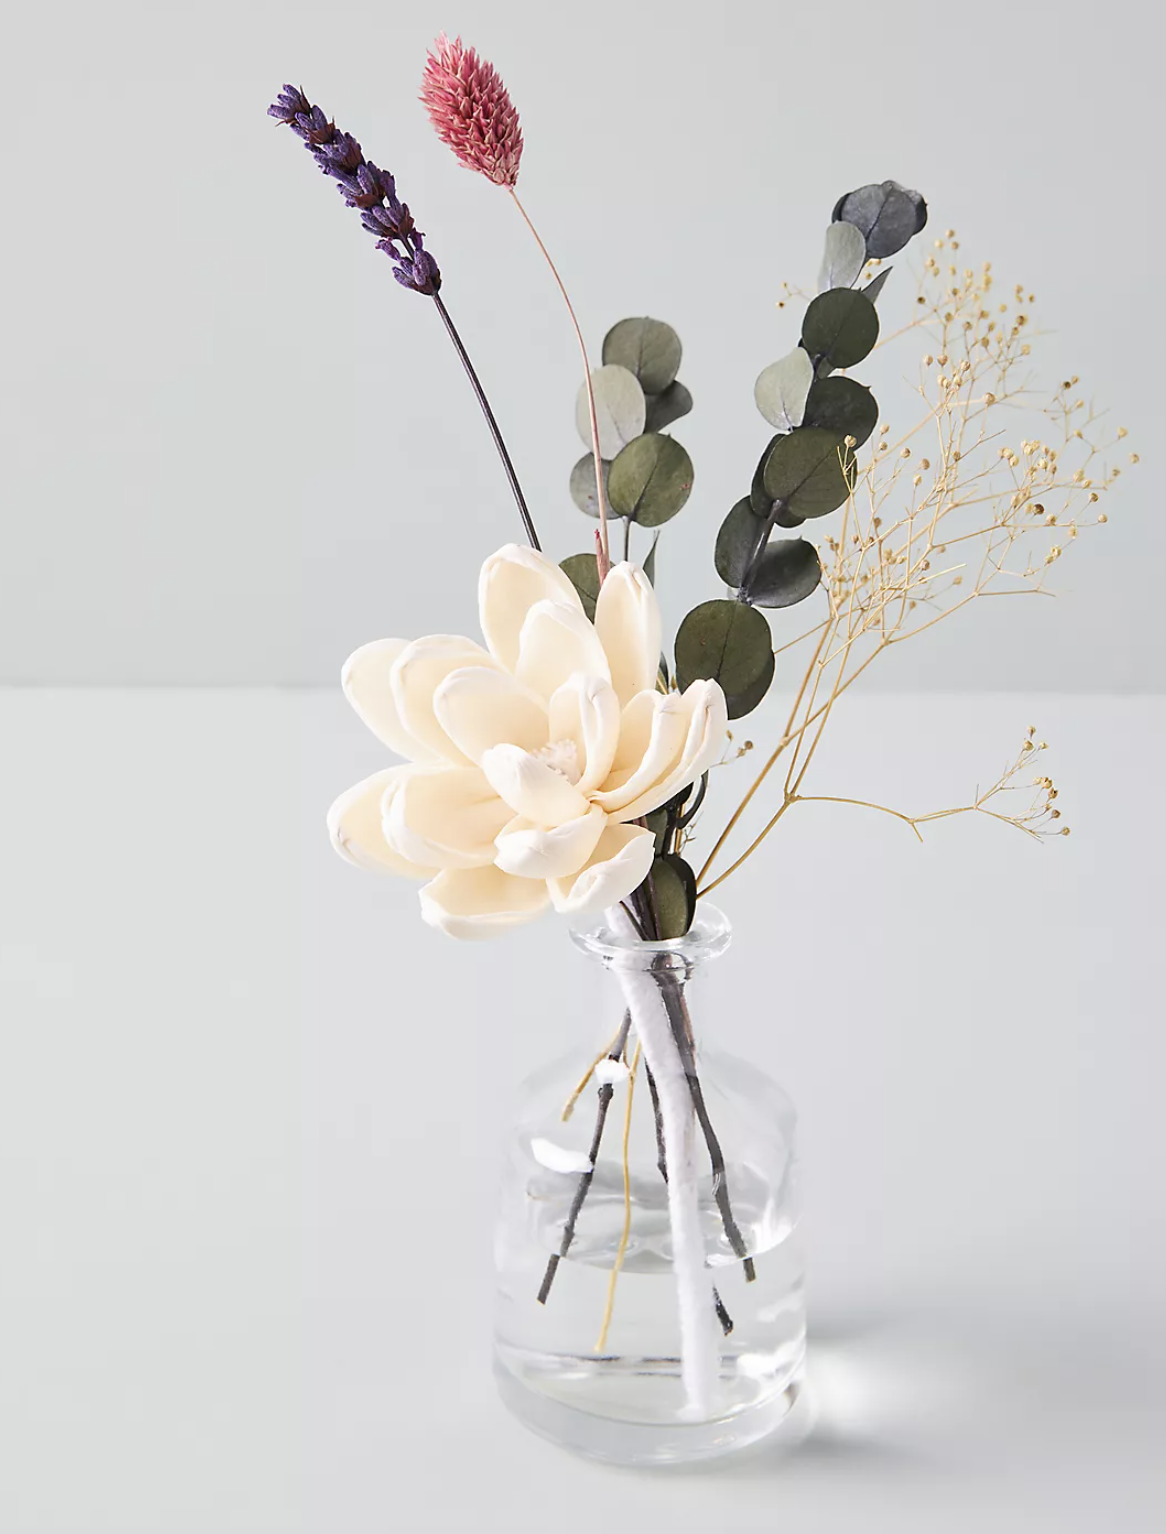 A clear small vase with flowers coming out of it